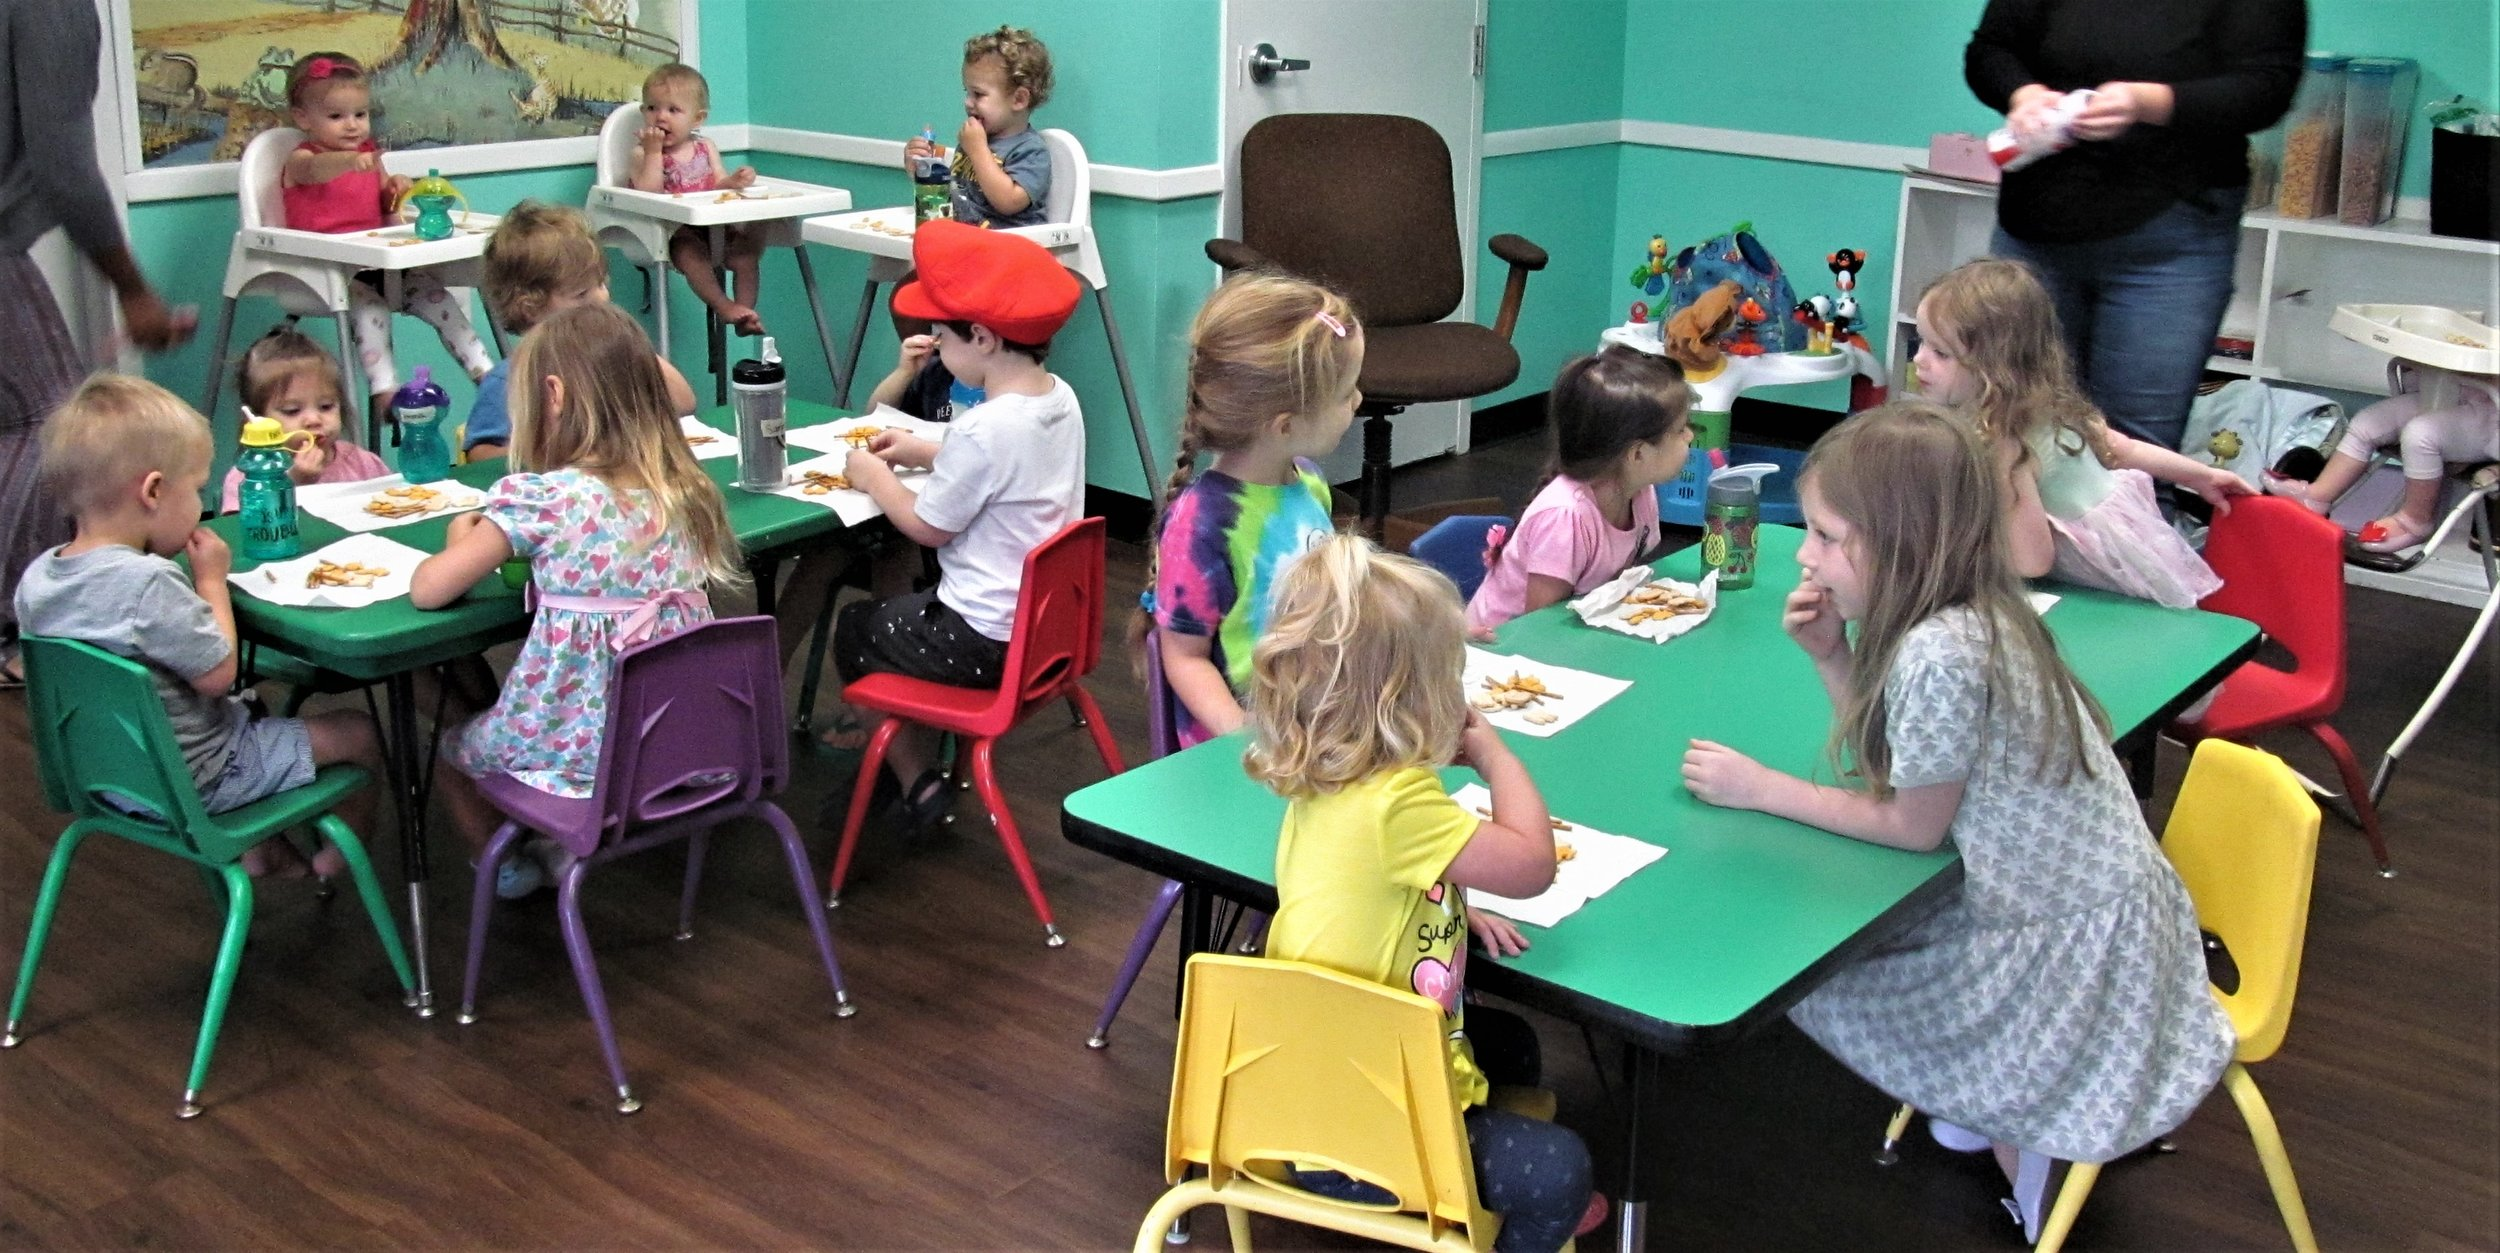 FPC Website Child Care Care 4.jpg